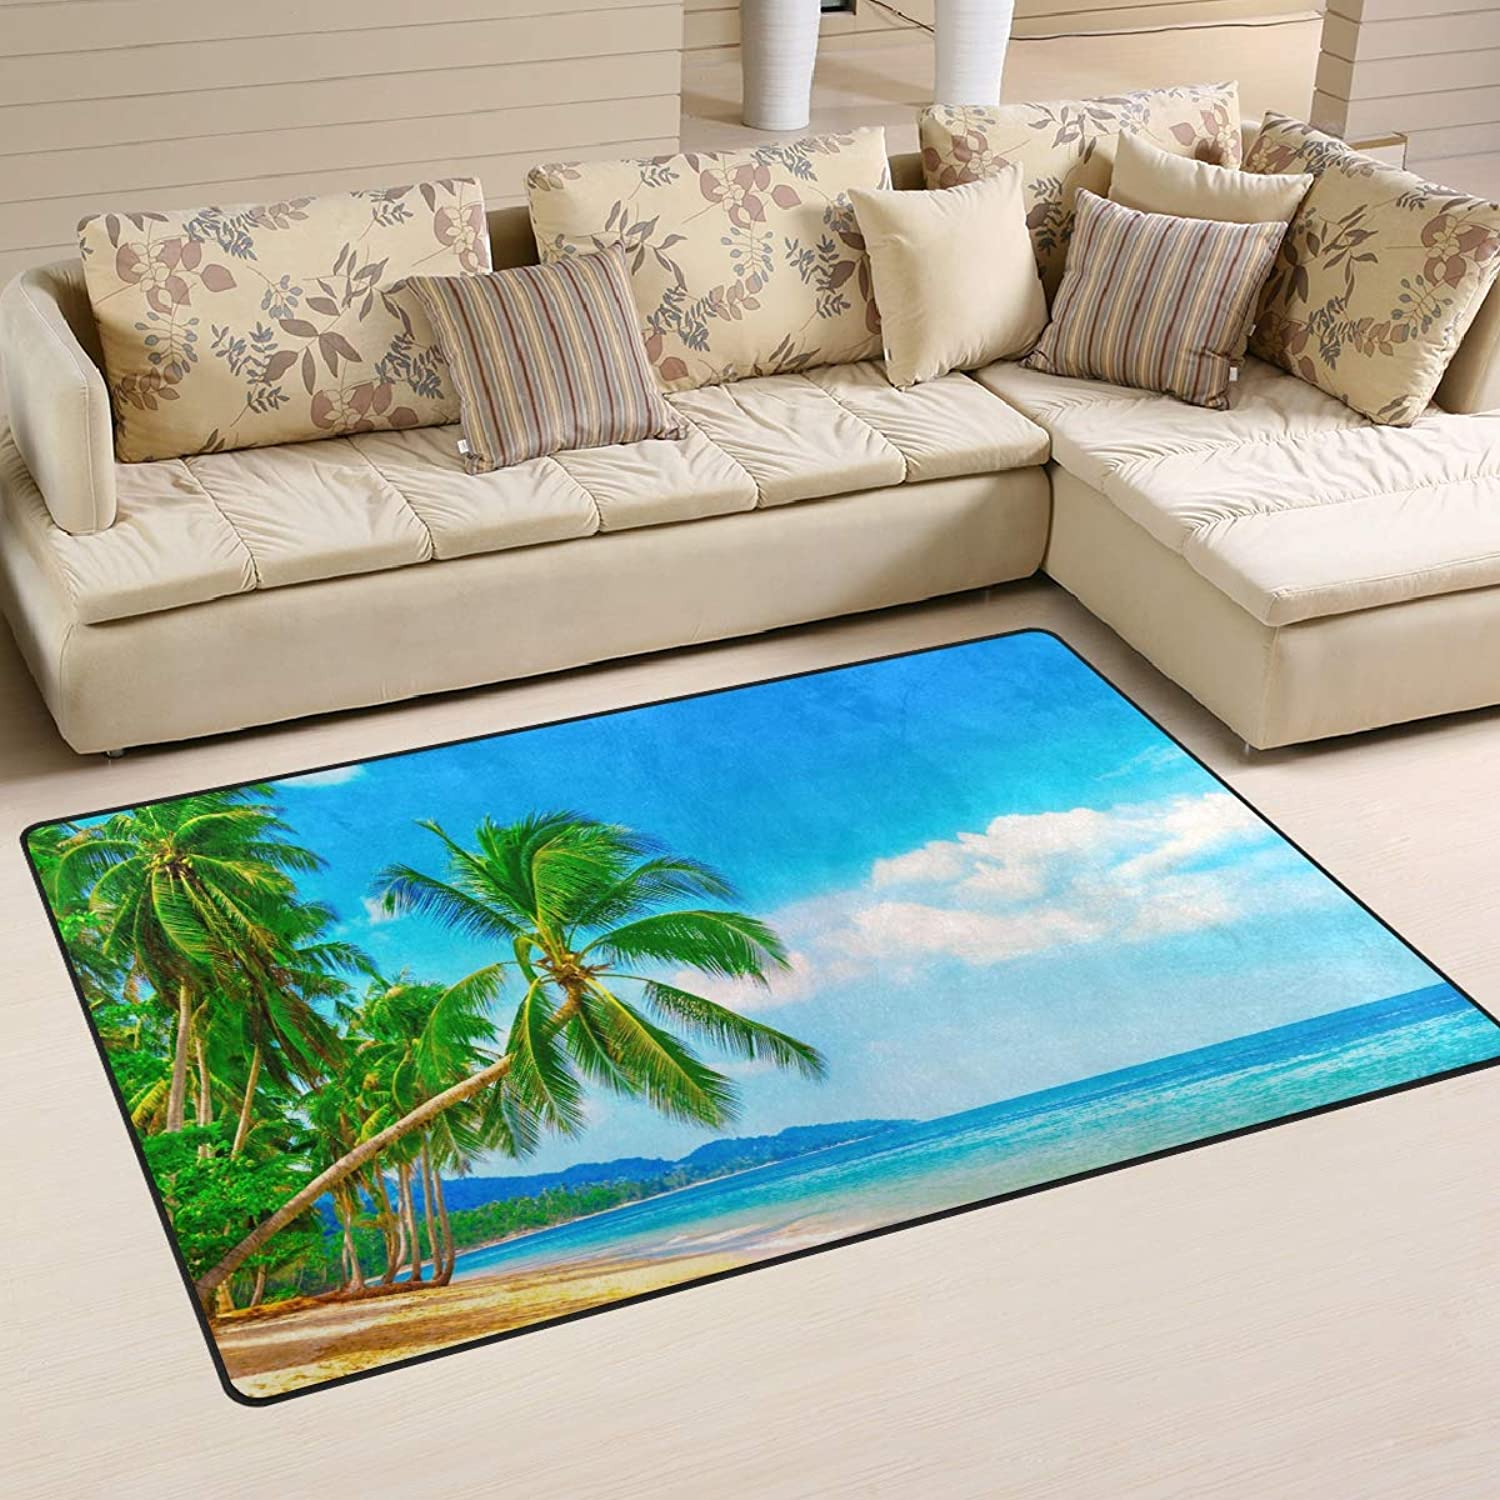 Area Rugs Doormats Beautiful Beach and Palm Tree 5'x3'3 (60x39 Inches) Non-Slip Floor Mat Soft Carpet for Living Dining Bedroom Home